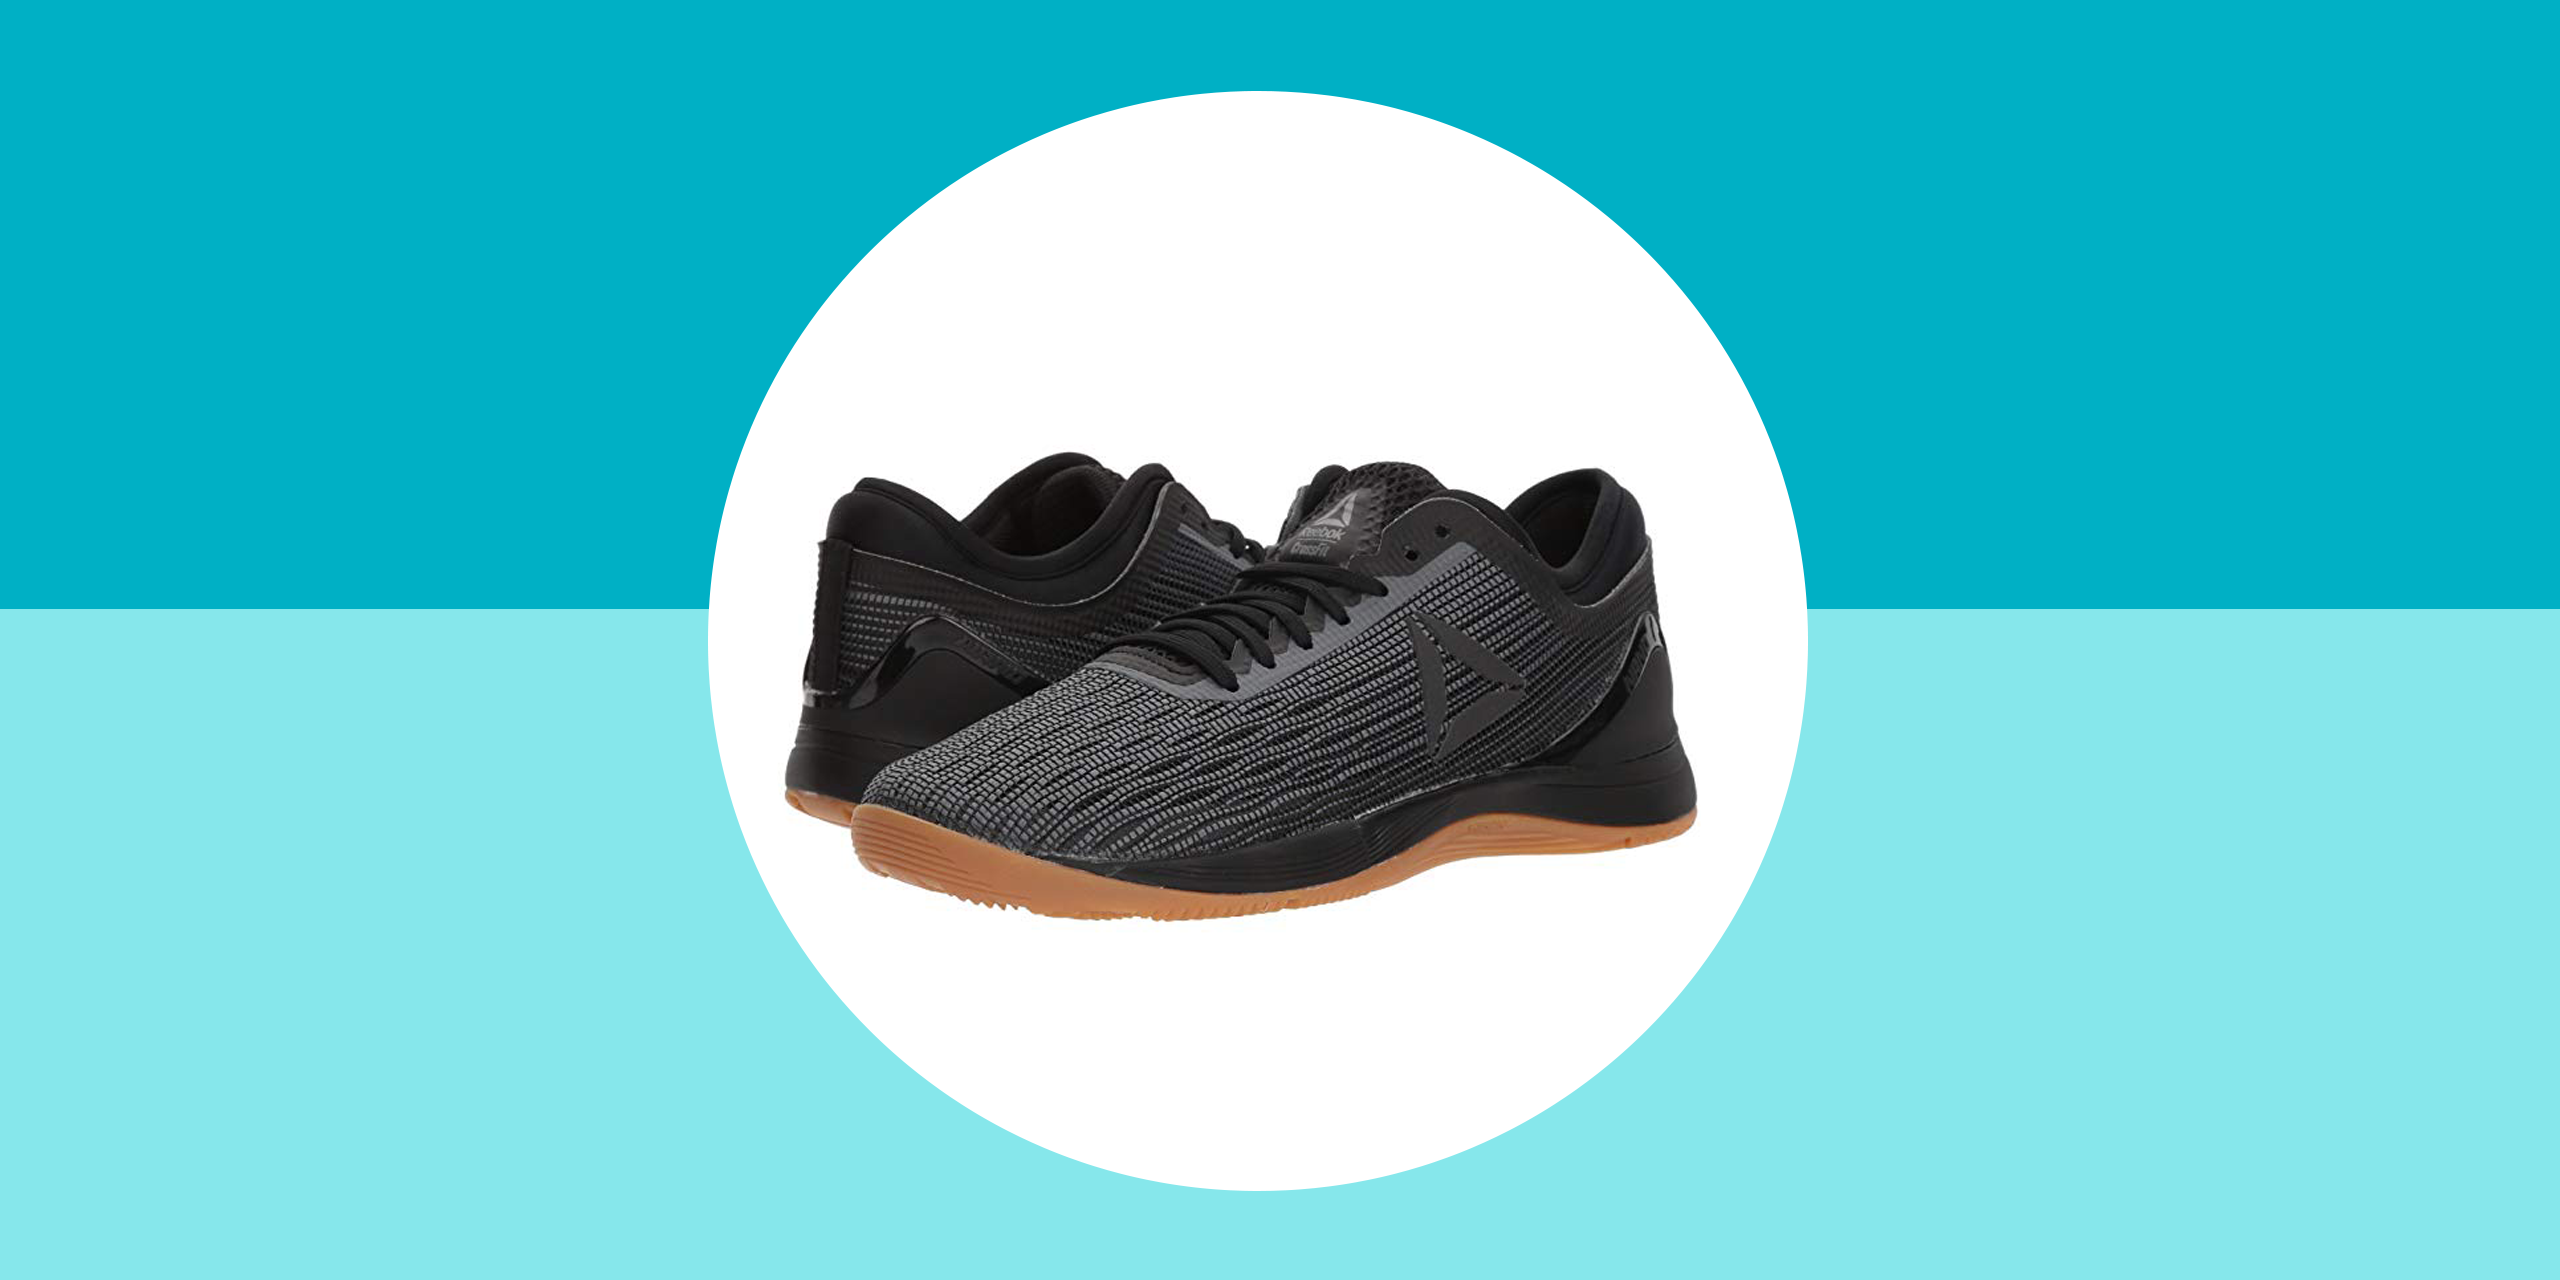 beed020cf2a9 10 Best Cross Training Shoes for Women 2019 - Best Training Shoes